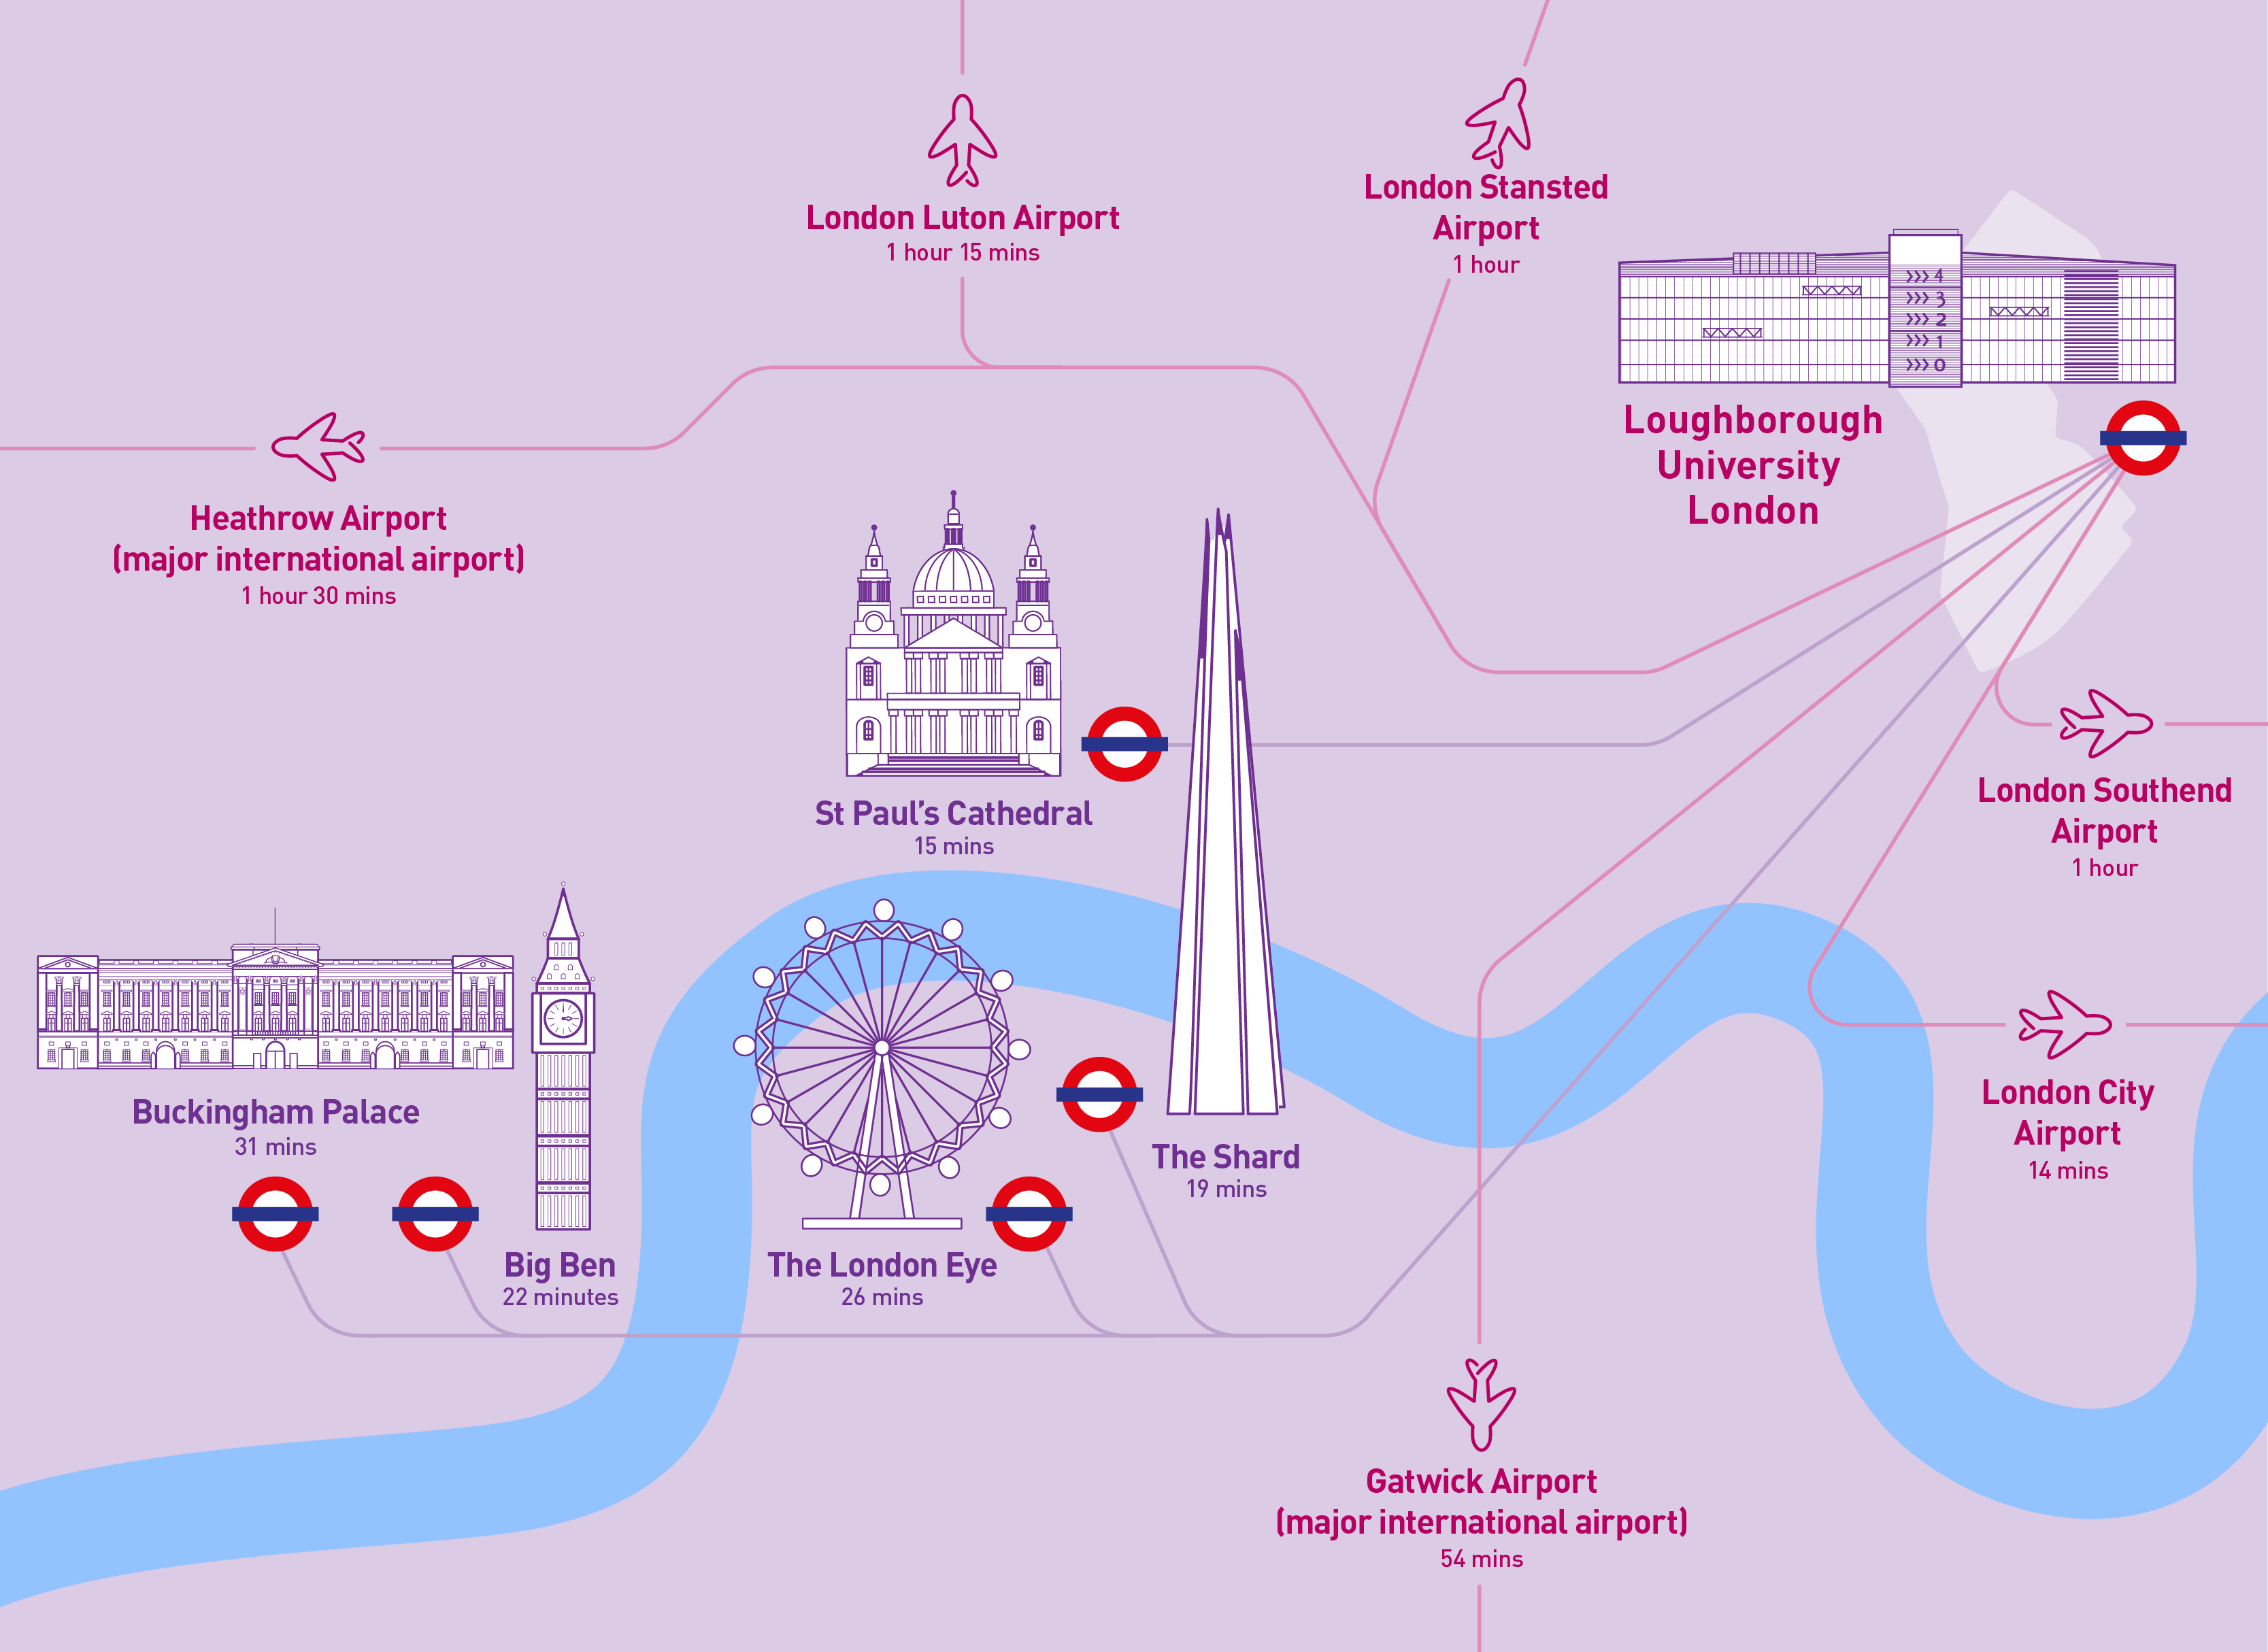 Map showcasing the location of major international airports in London and key attractions and how long it takes to travel to our London campus.